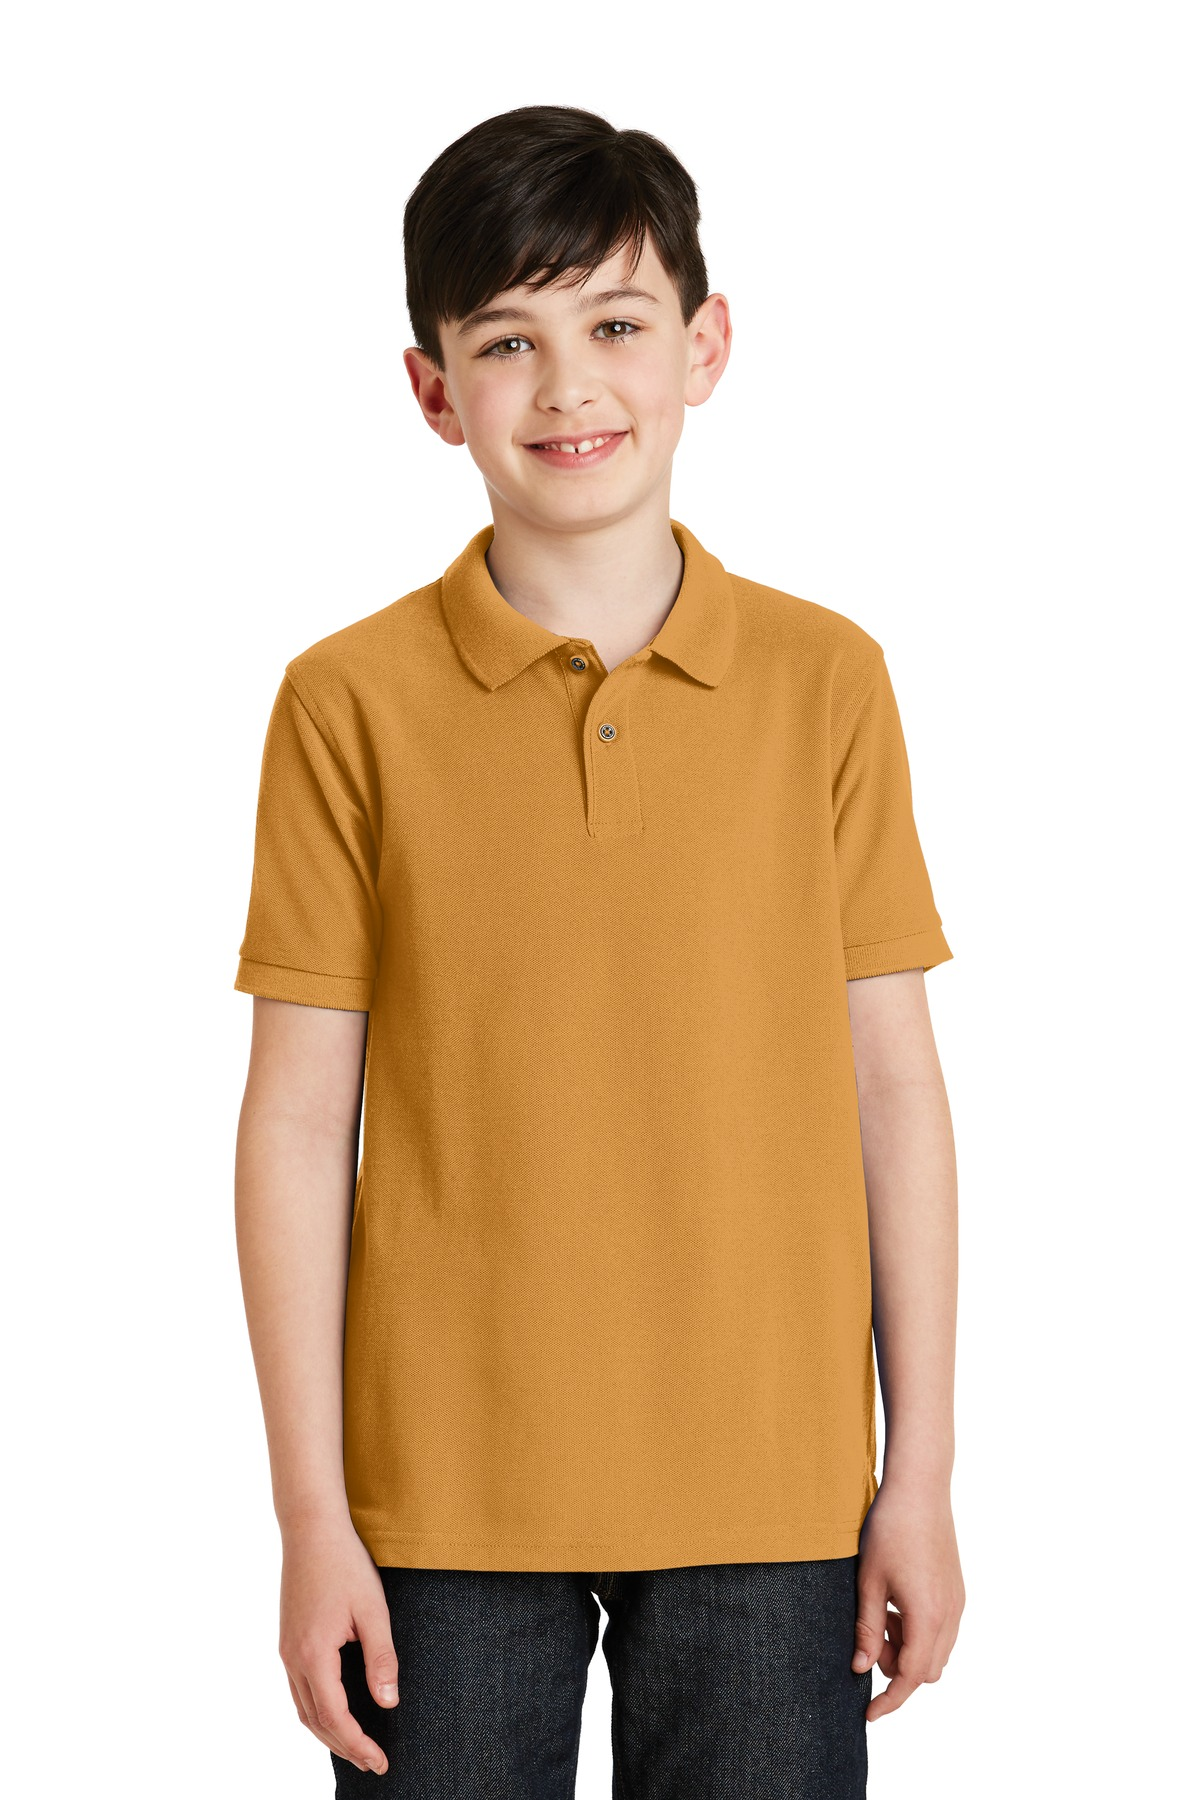 Port Authority ®  Youth Silk Touch™ Polo.  Y500 - Gold